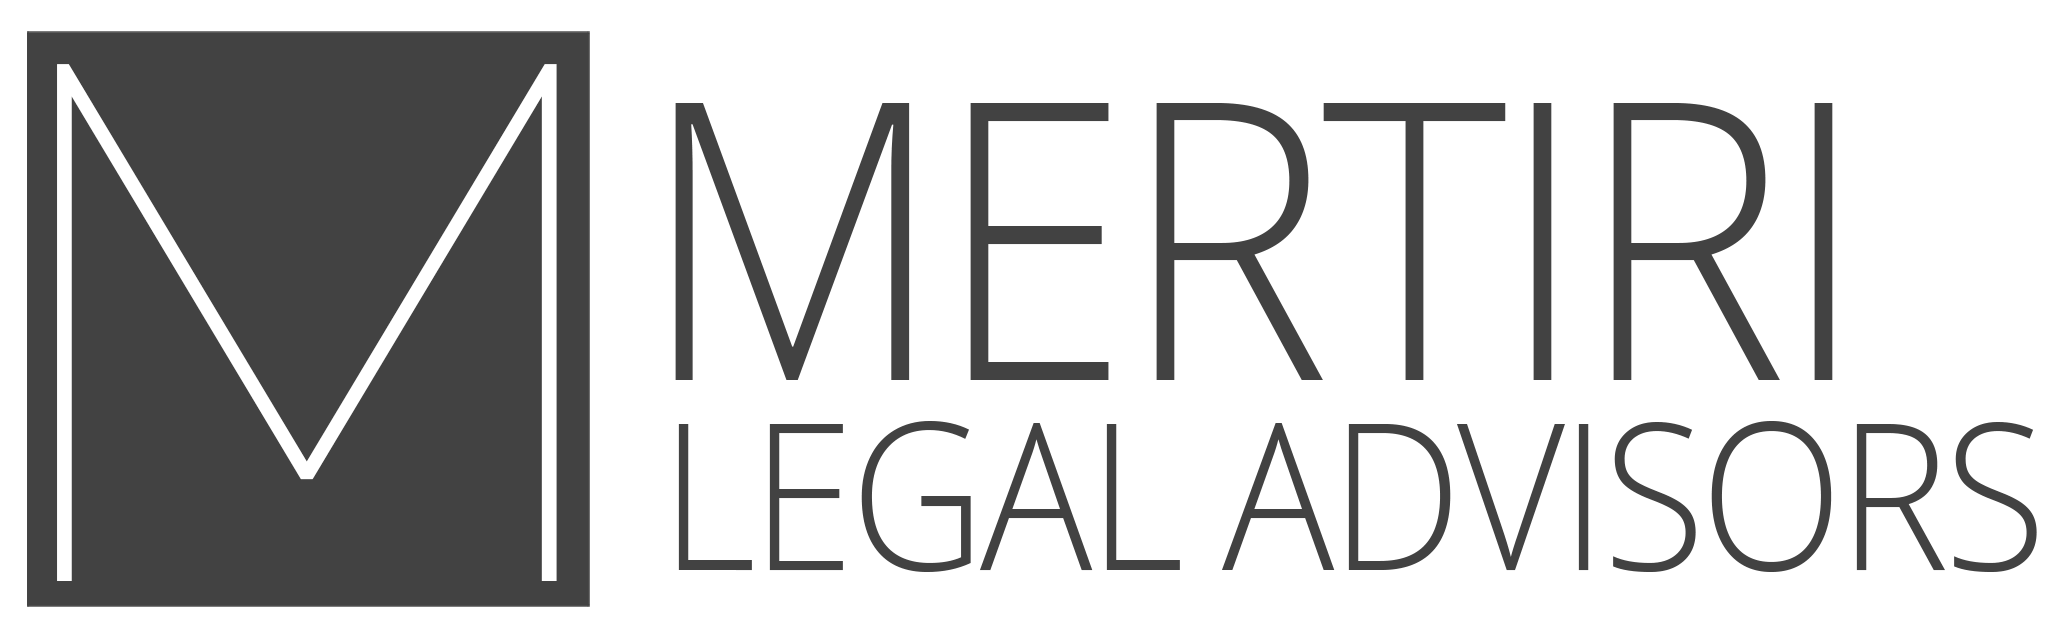 MLA | MERTIRI LEGAL ADVISORS